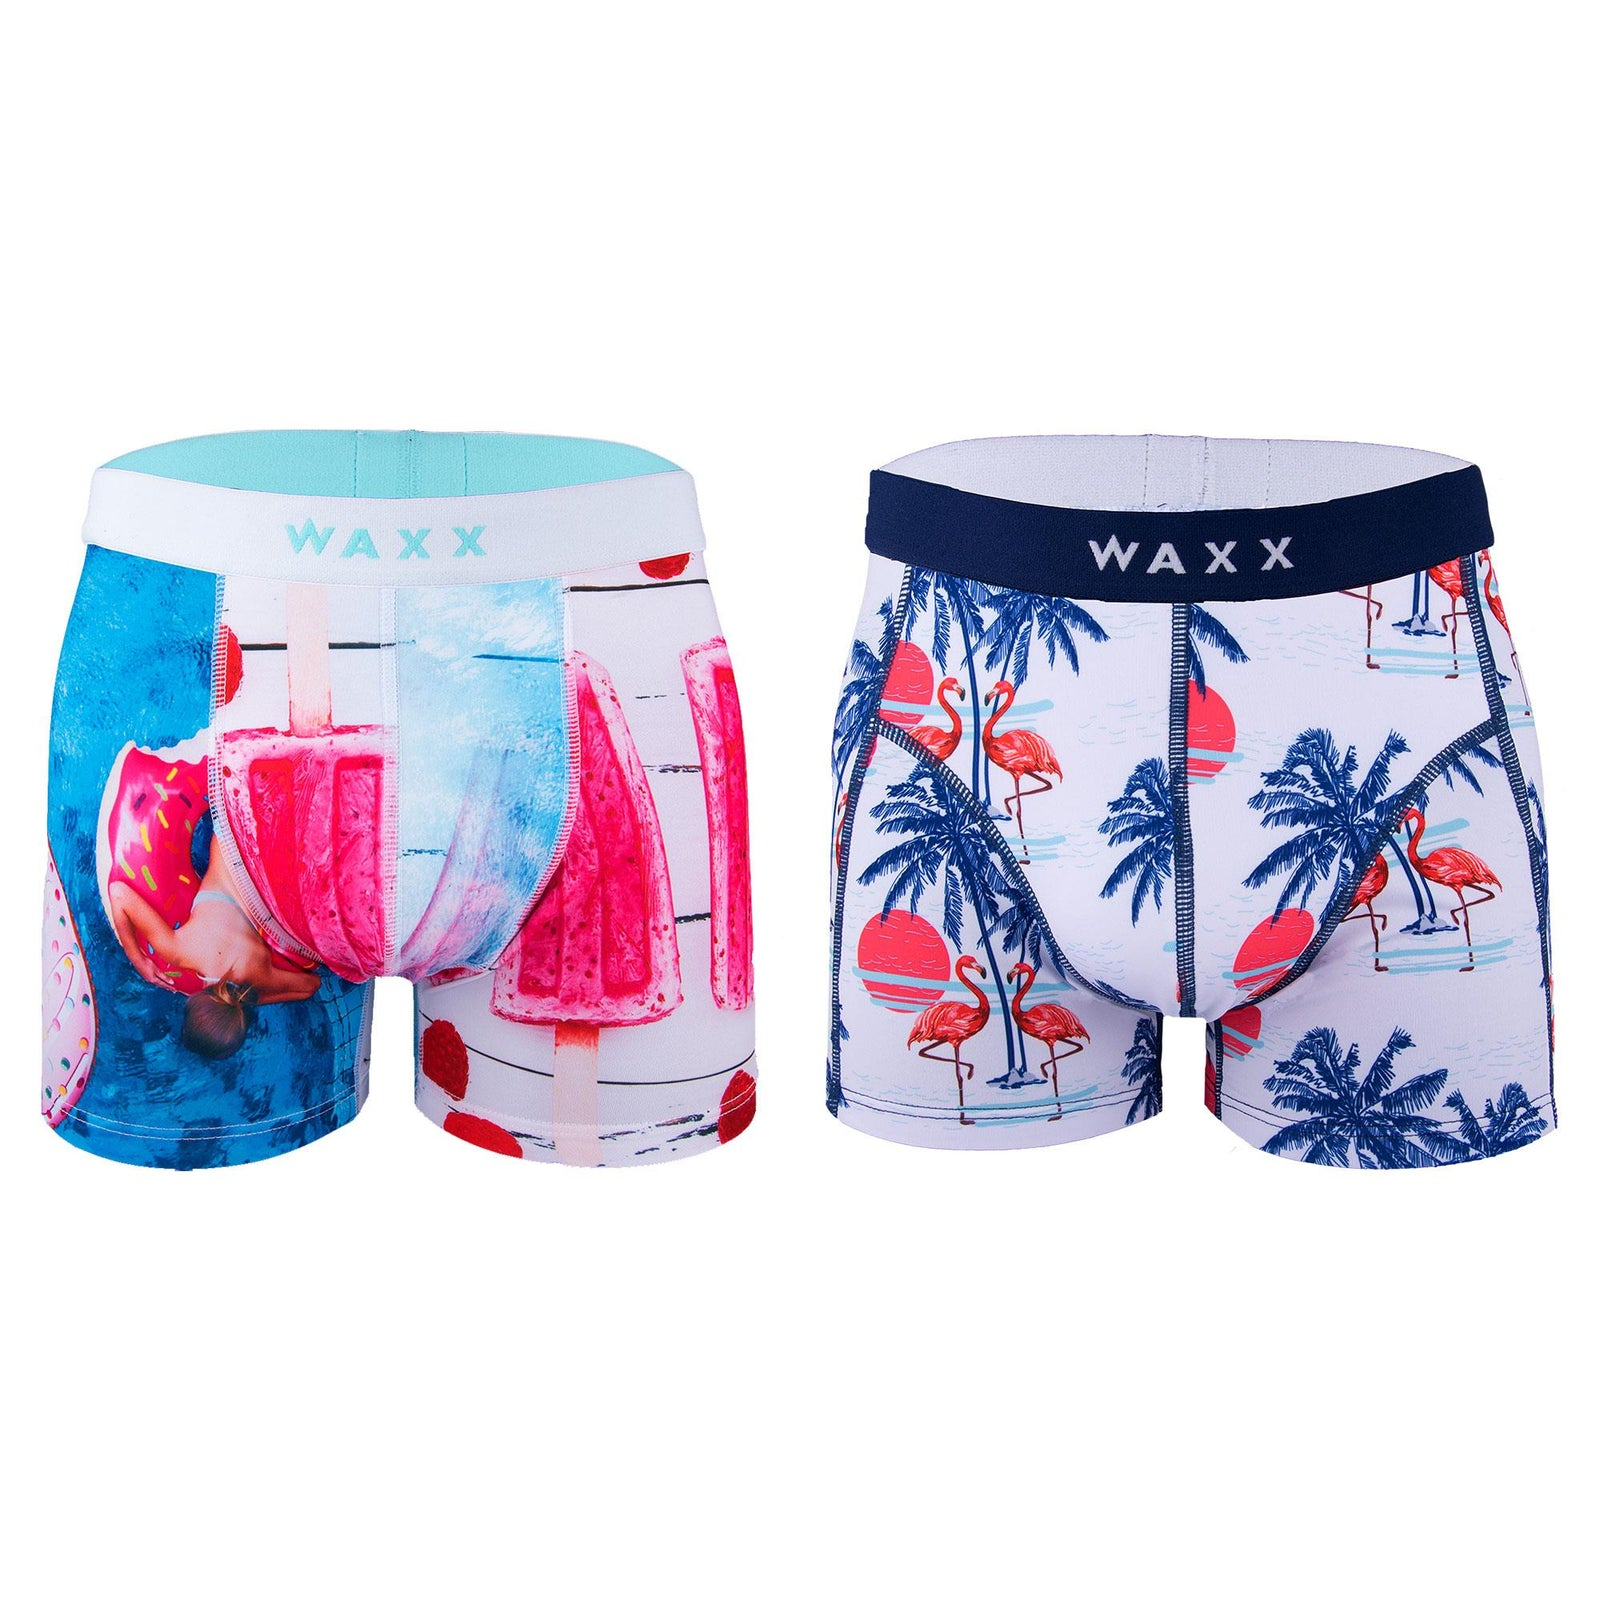 Holiday Themed Boxer Shorts /Trunks